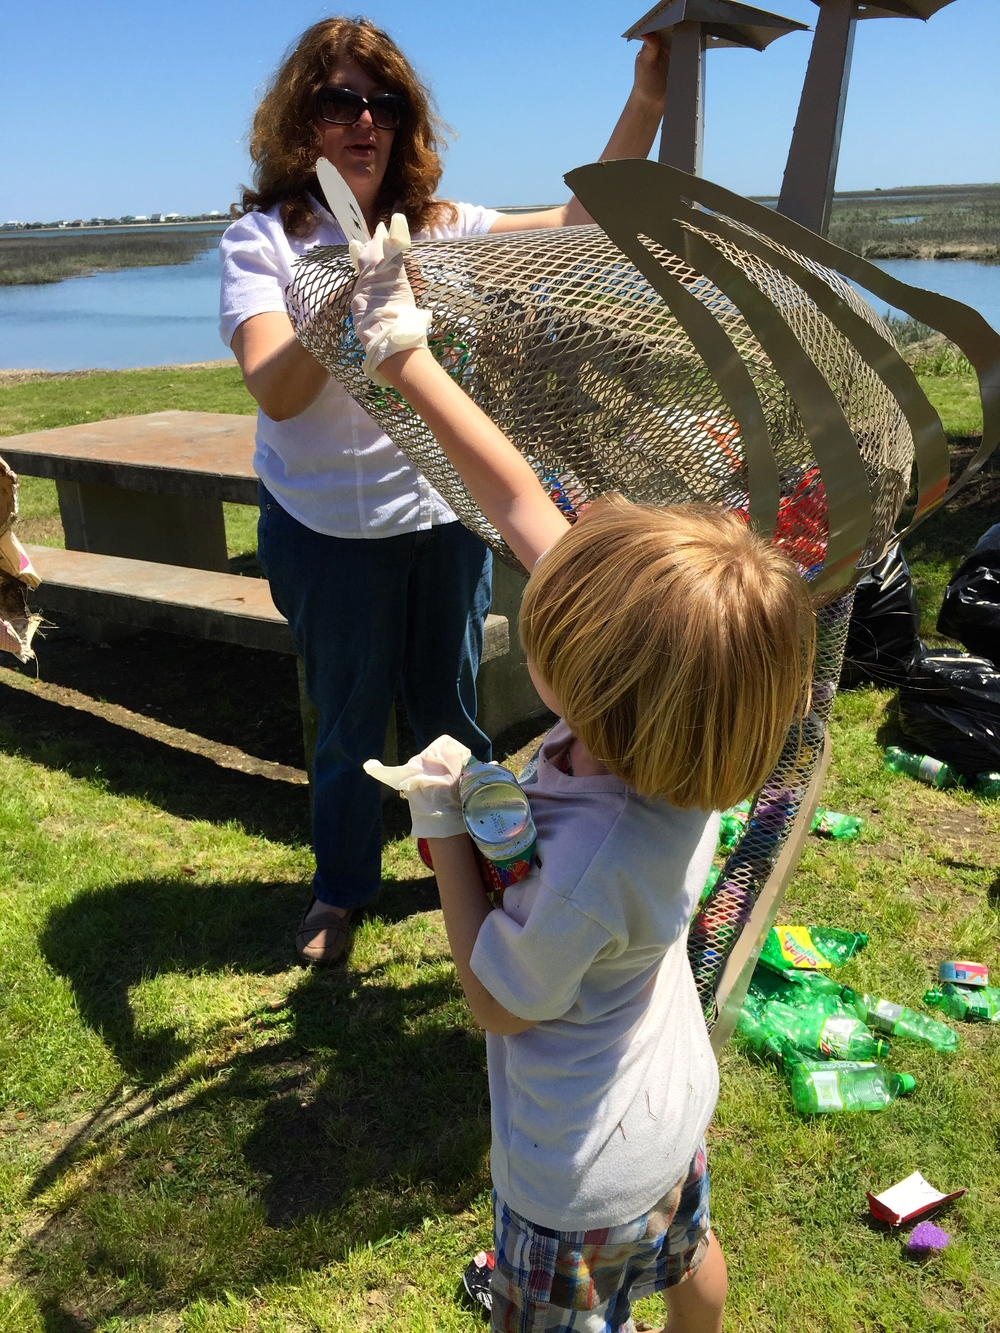 A 7 year old fills the morse Park Pelican with Crushed bottles and cans